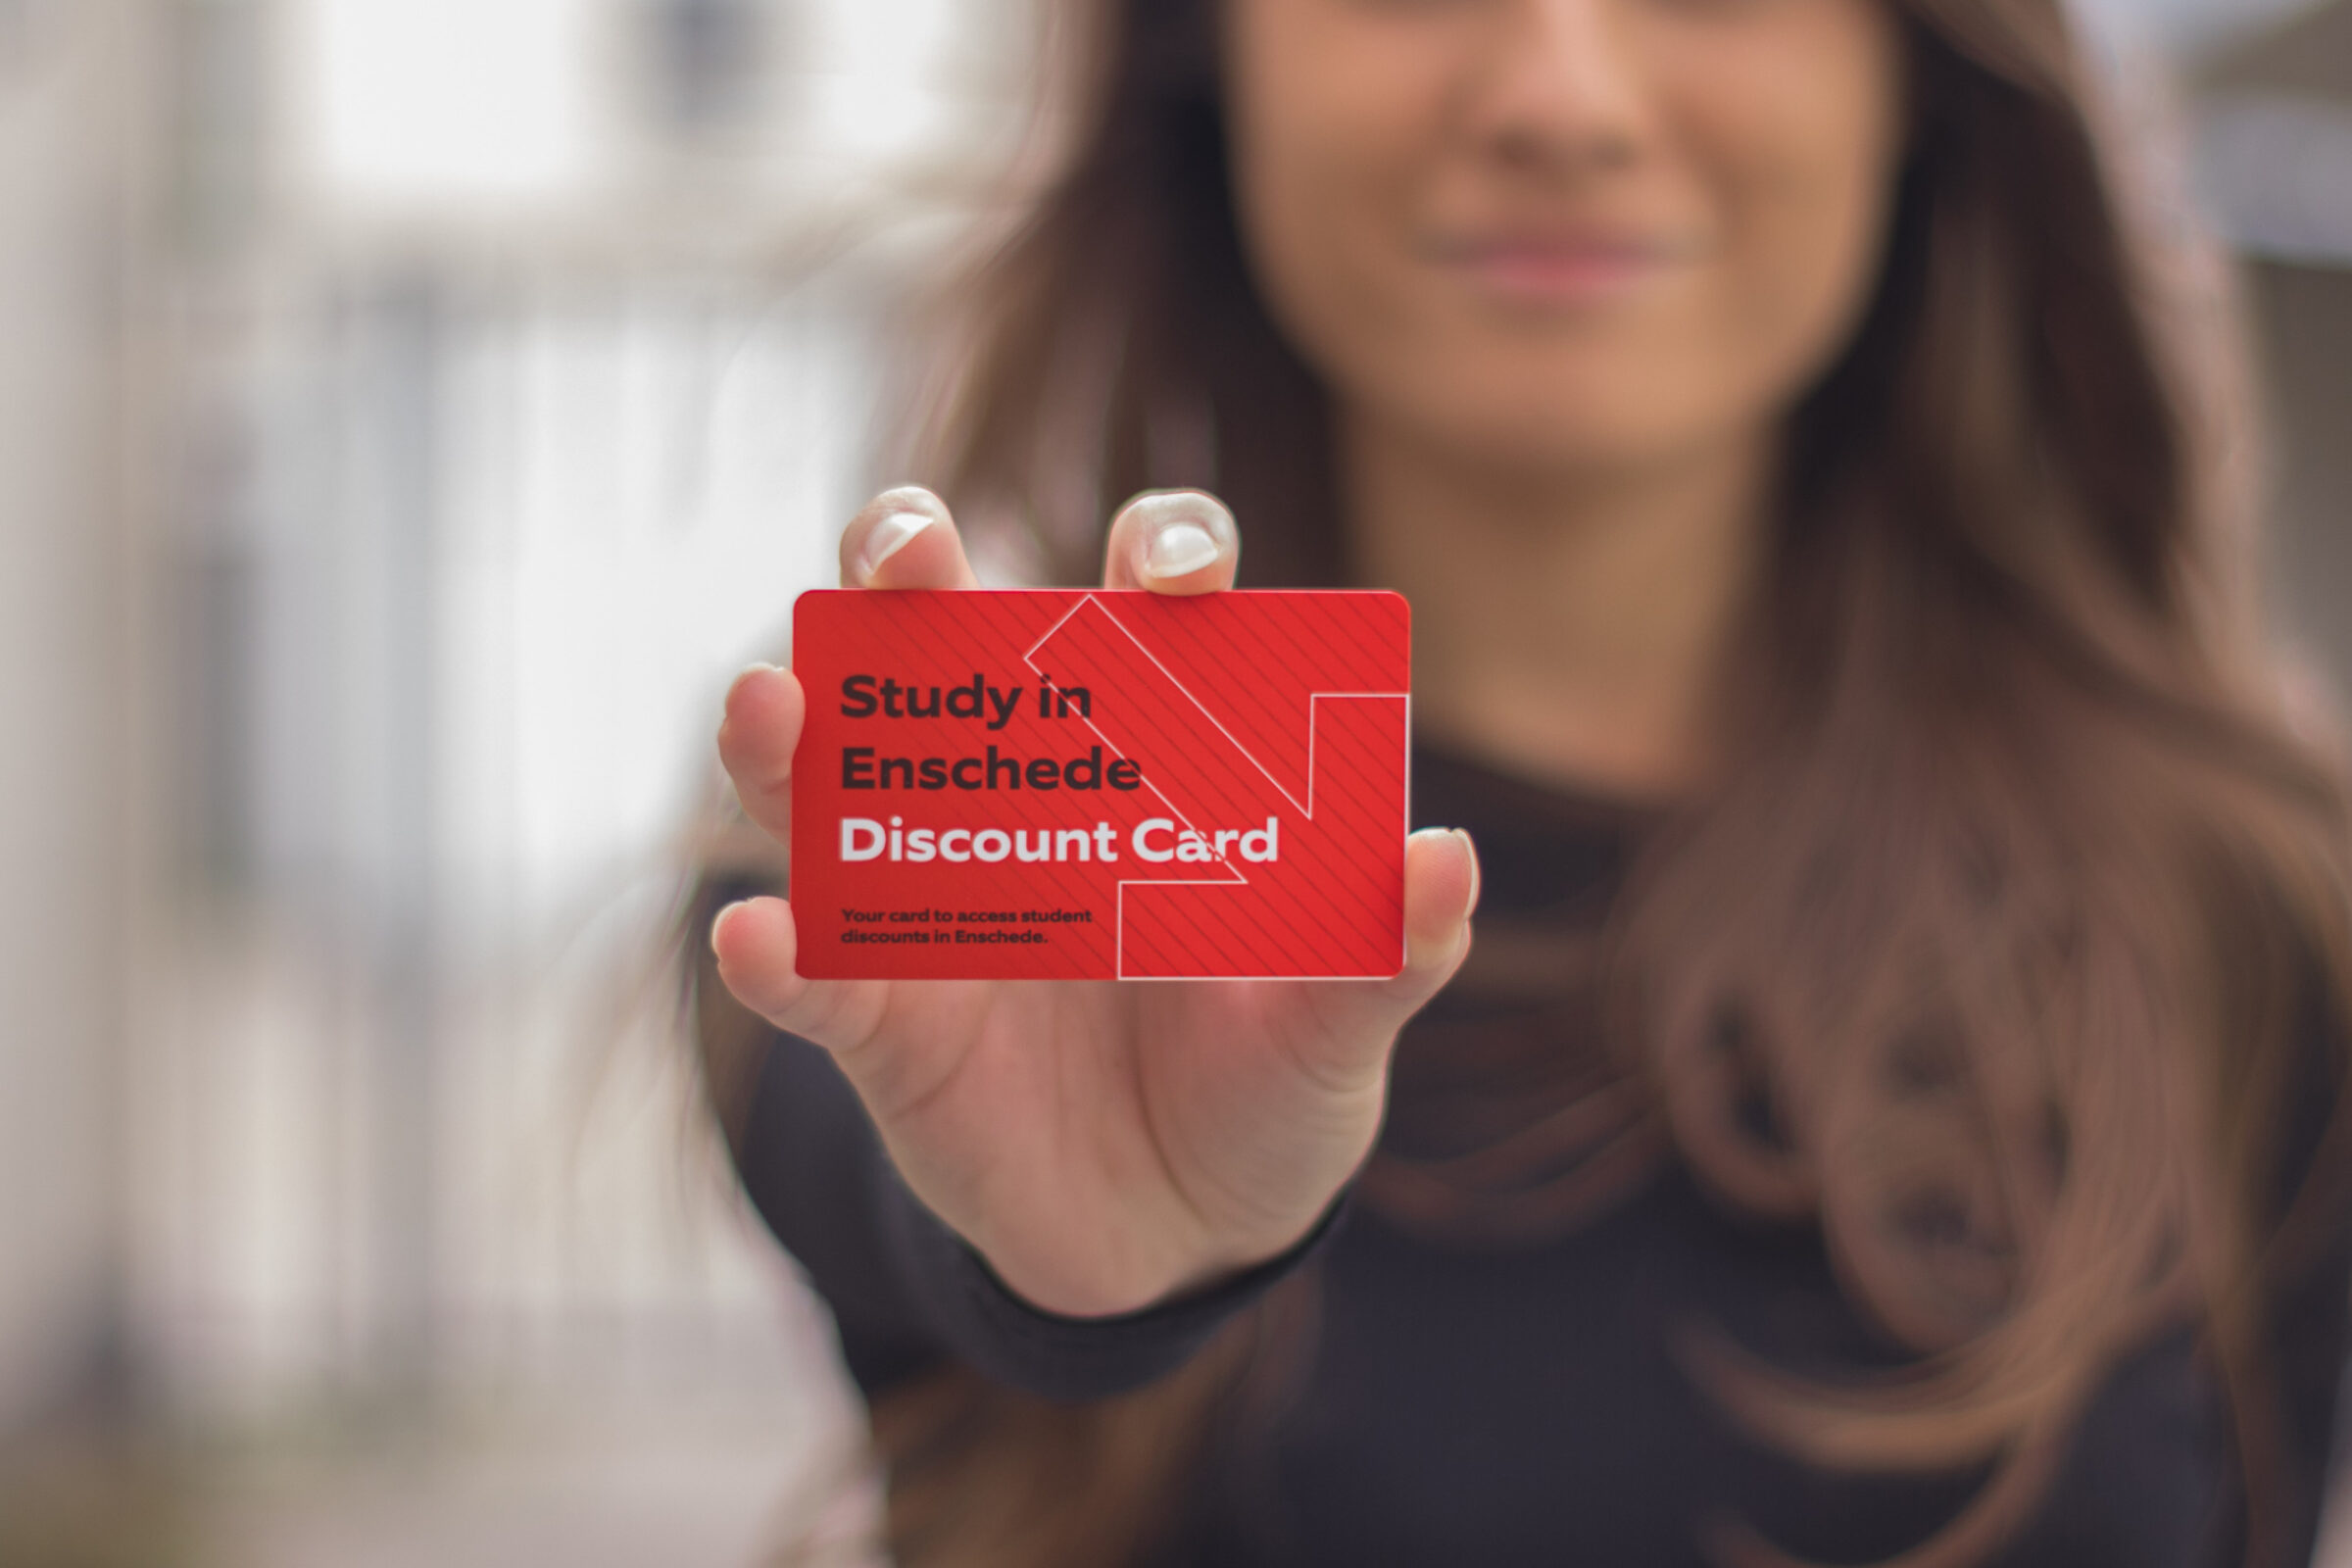 Study in Enschede Discount card